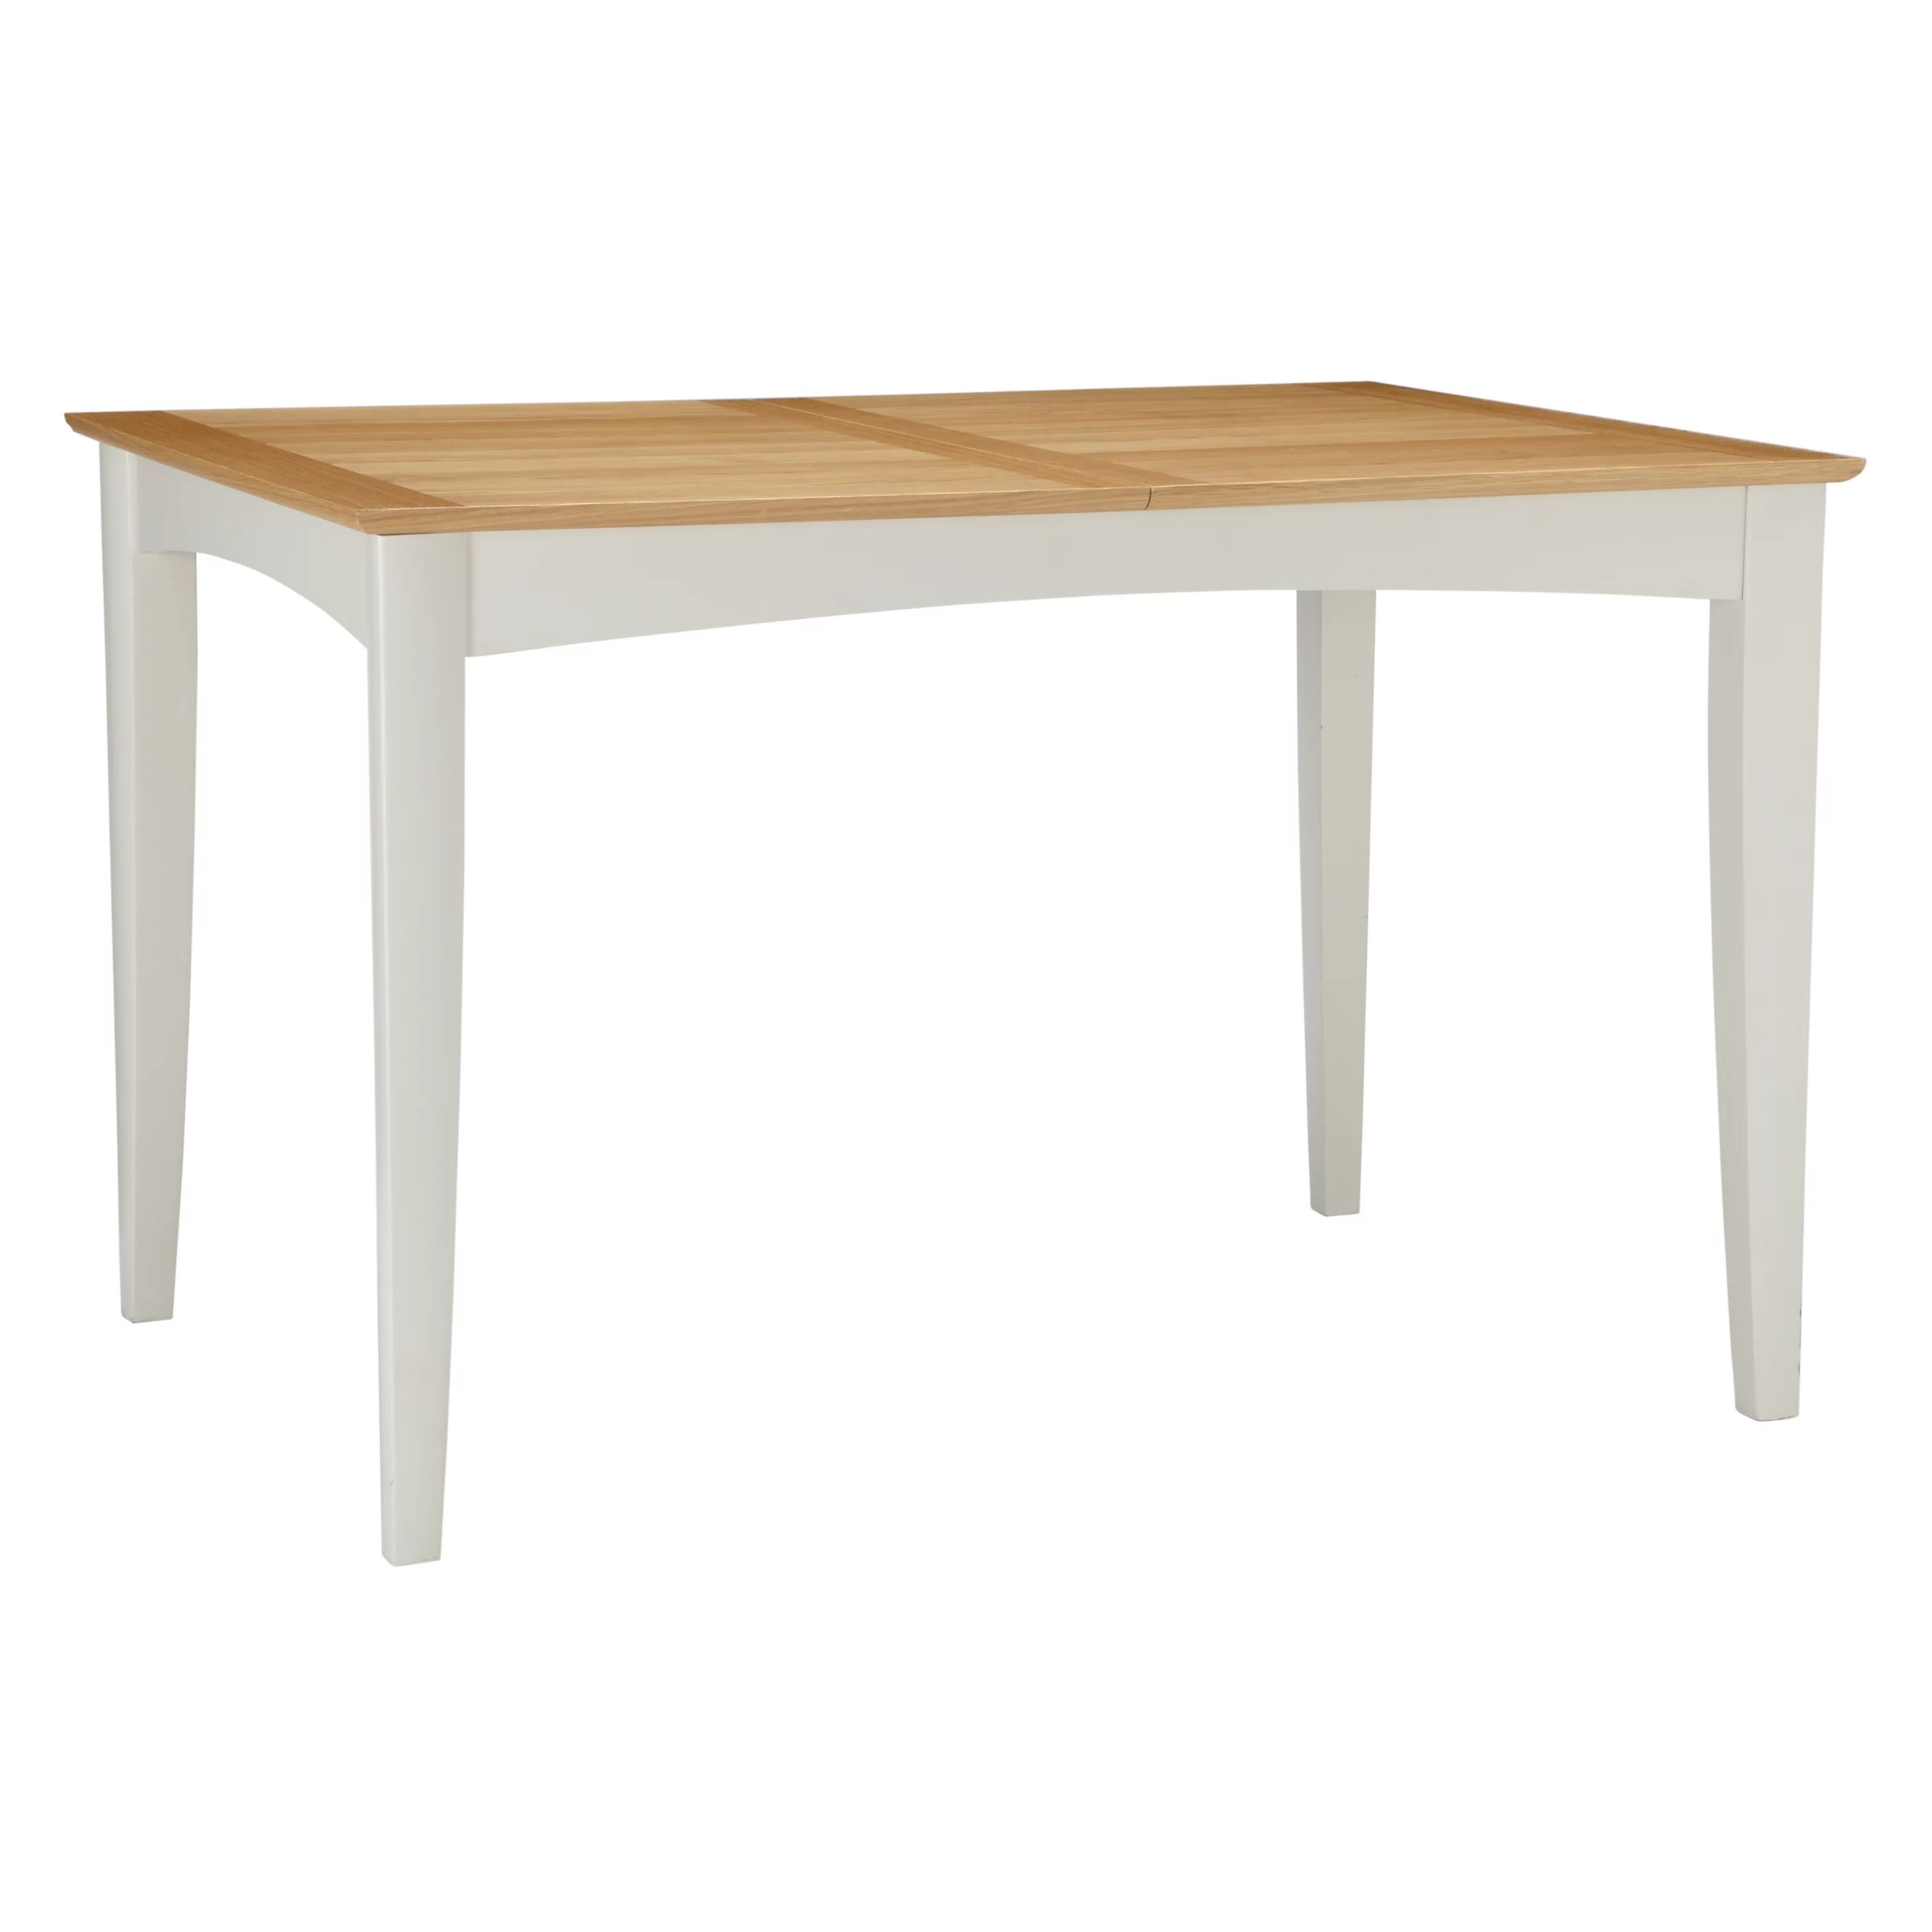 Extending Oak Table John Lewis Partners Alba 4 6 Seater Extending Dining Table Soft